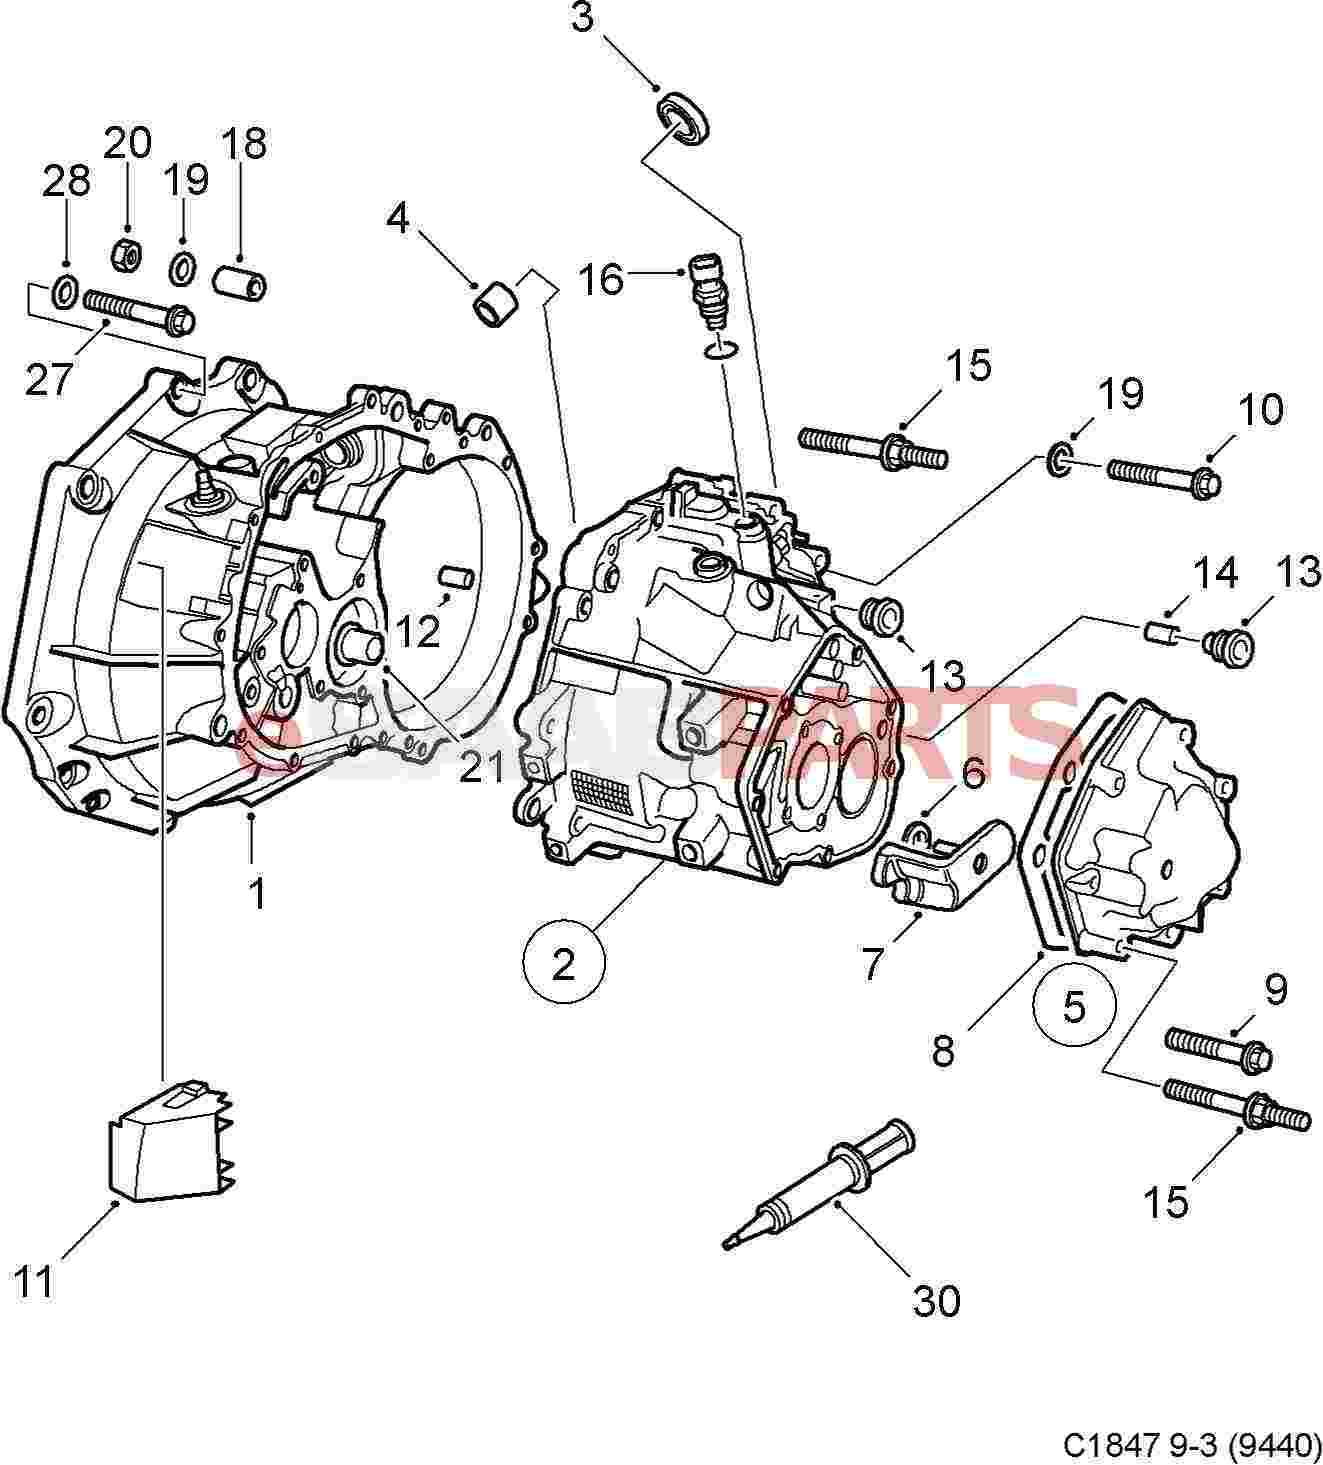 Diagram Allison Transmission Parts Diagram Manual Full Version Hd Quality Diagram Manual